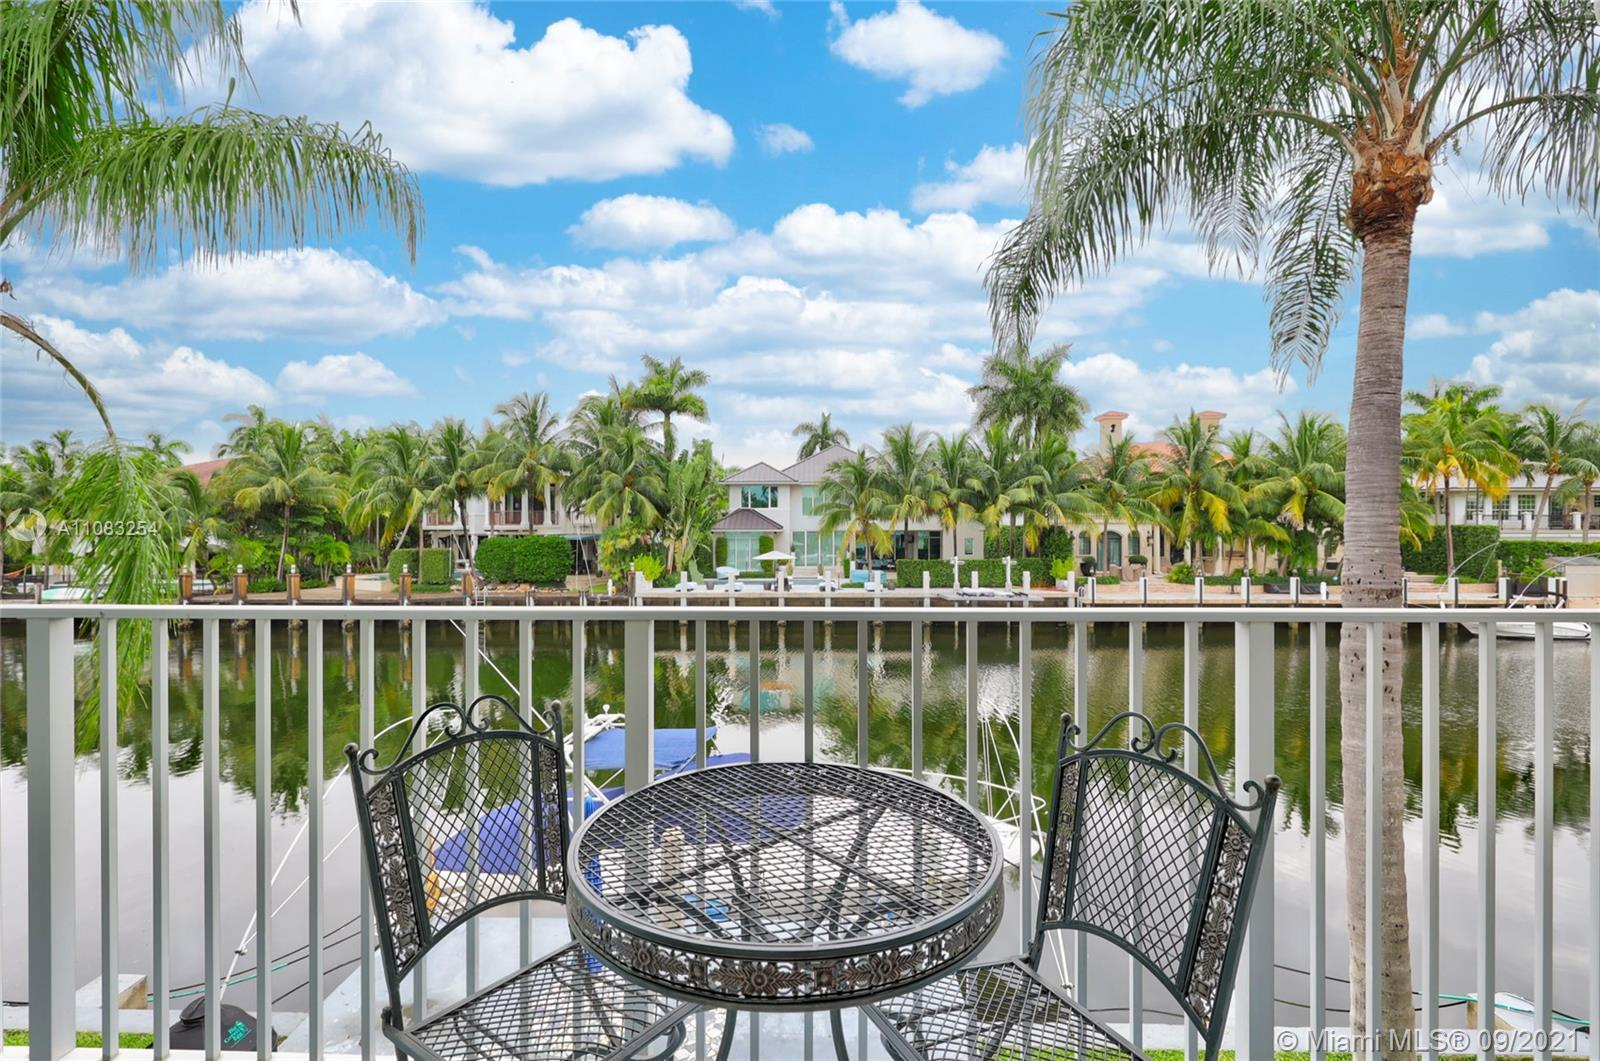 Top notch updated MIDCENTURY MODERN 2/2 co-op unit at The Oasis of Nurmi Isles off the world famous